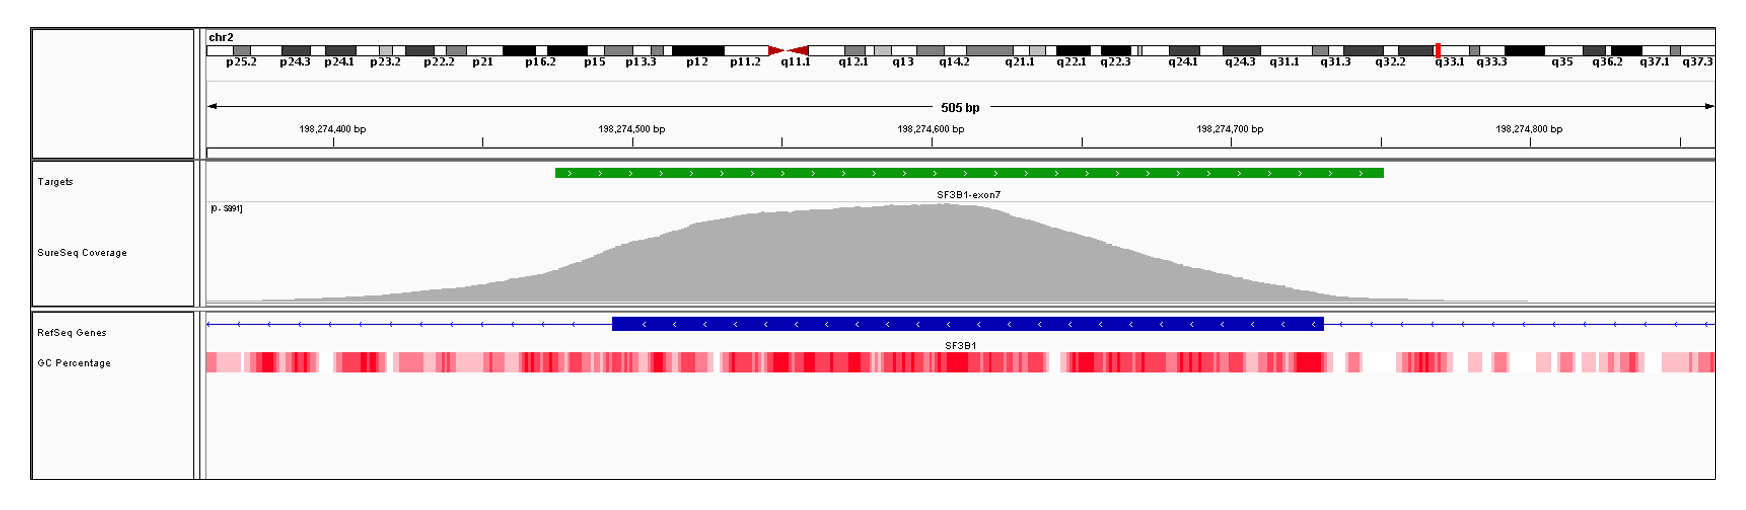 SF3B1 Exon 7 (hg19 chr2:198274494-198274731). Depth of coverage per base (grey). Targeted region (green). Gene coding region as defined by RefSeq (blue). GC percentage (red). Image